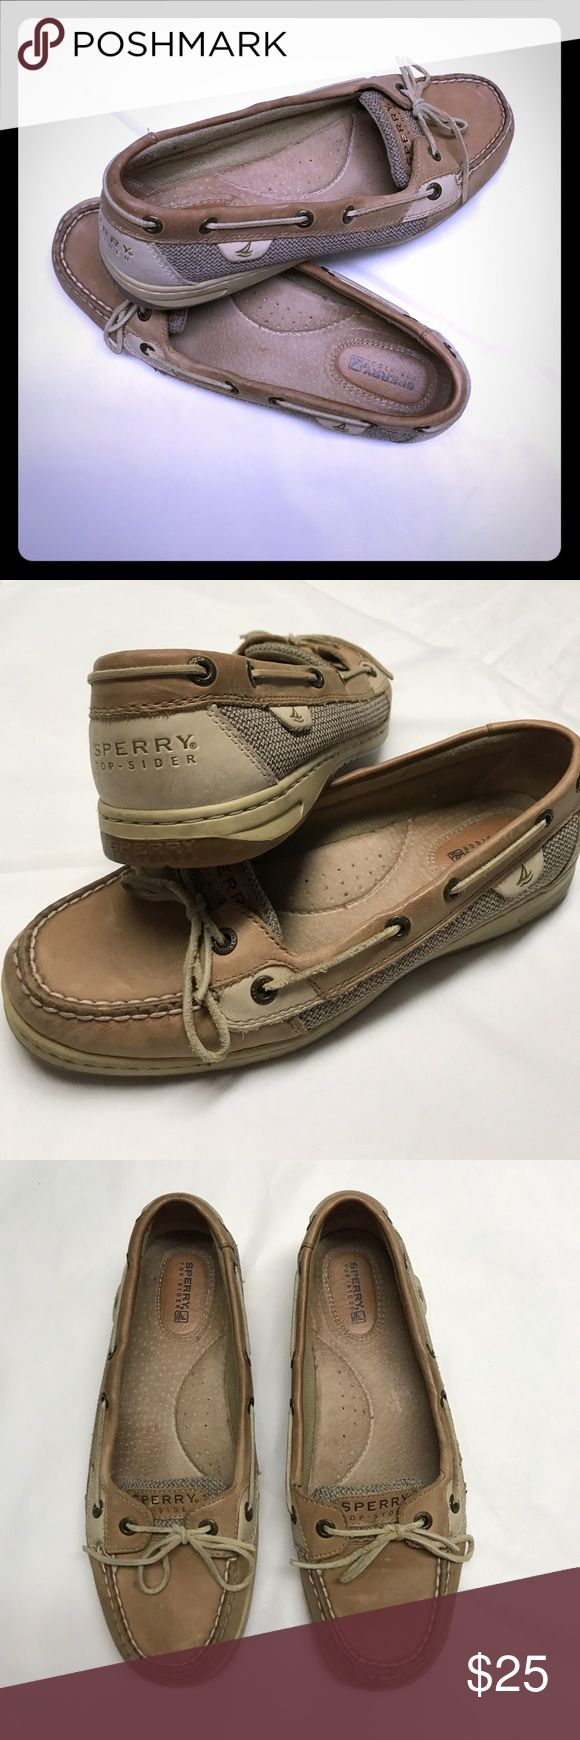 Sperry Top-Sider ladies shoes very good condition (See pictures). Size 8 1/2 M Sperry Top-Sider Shoes Slippers